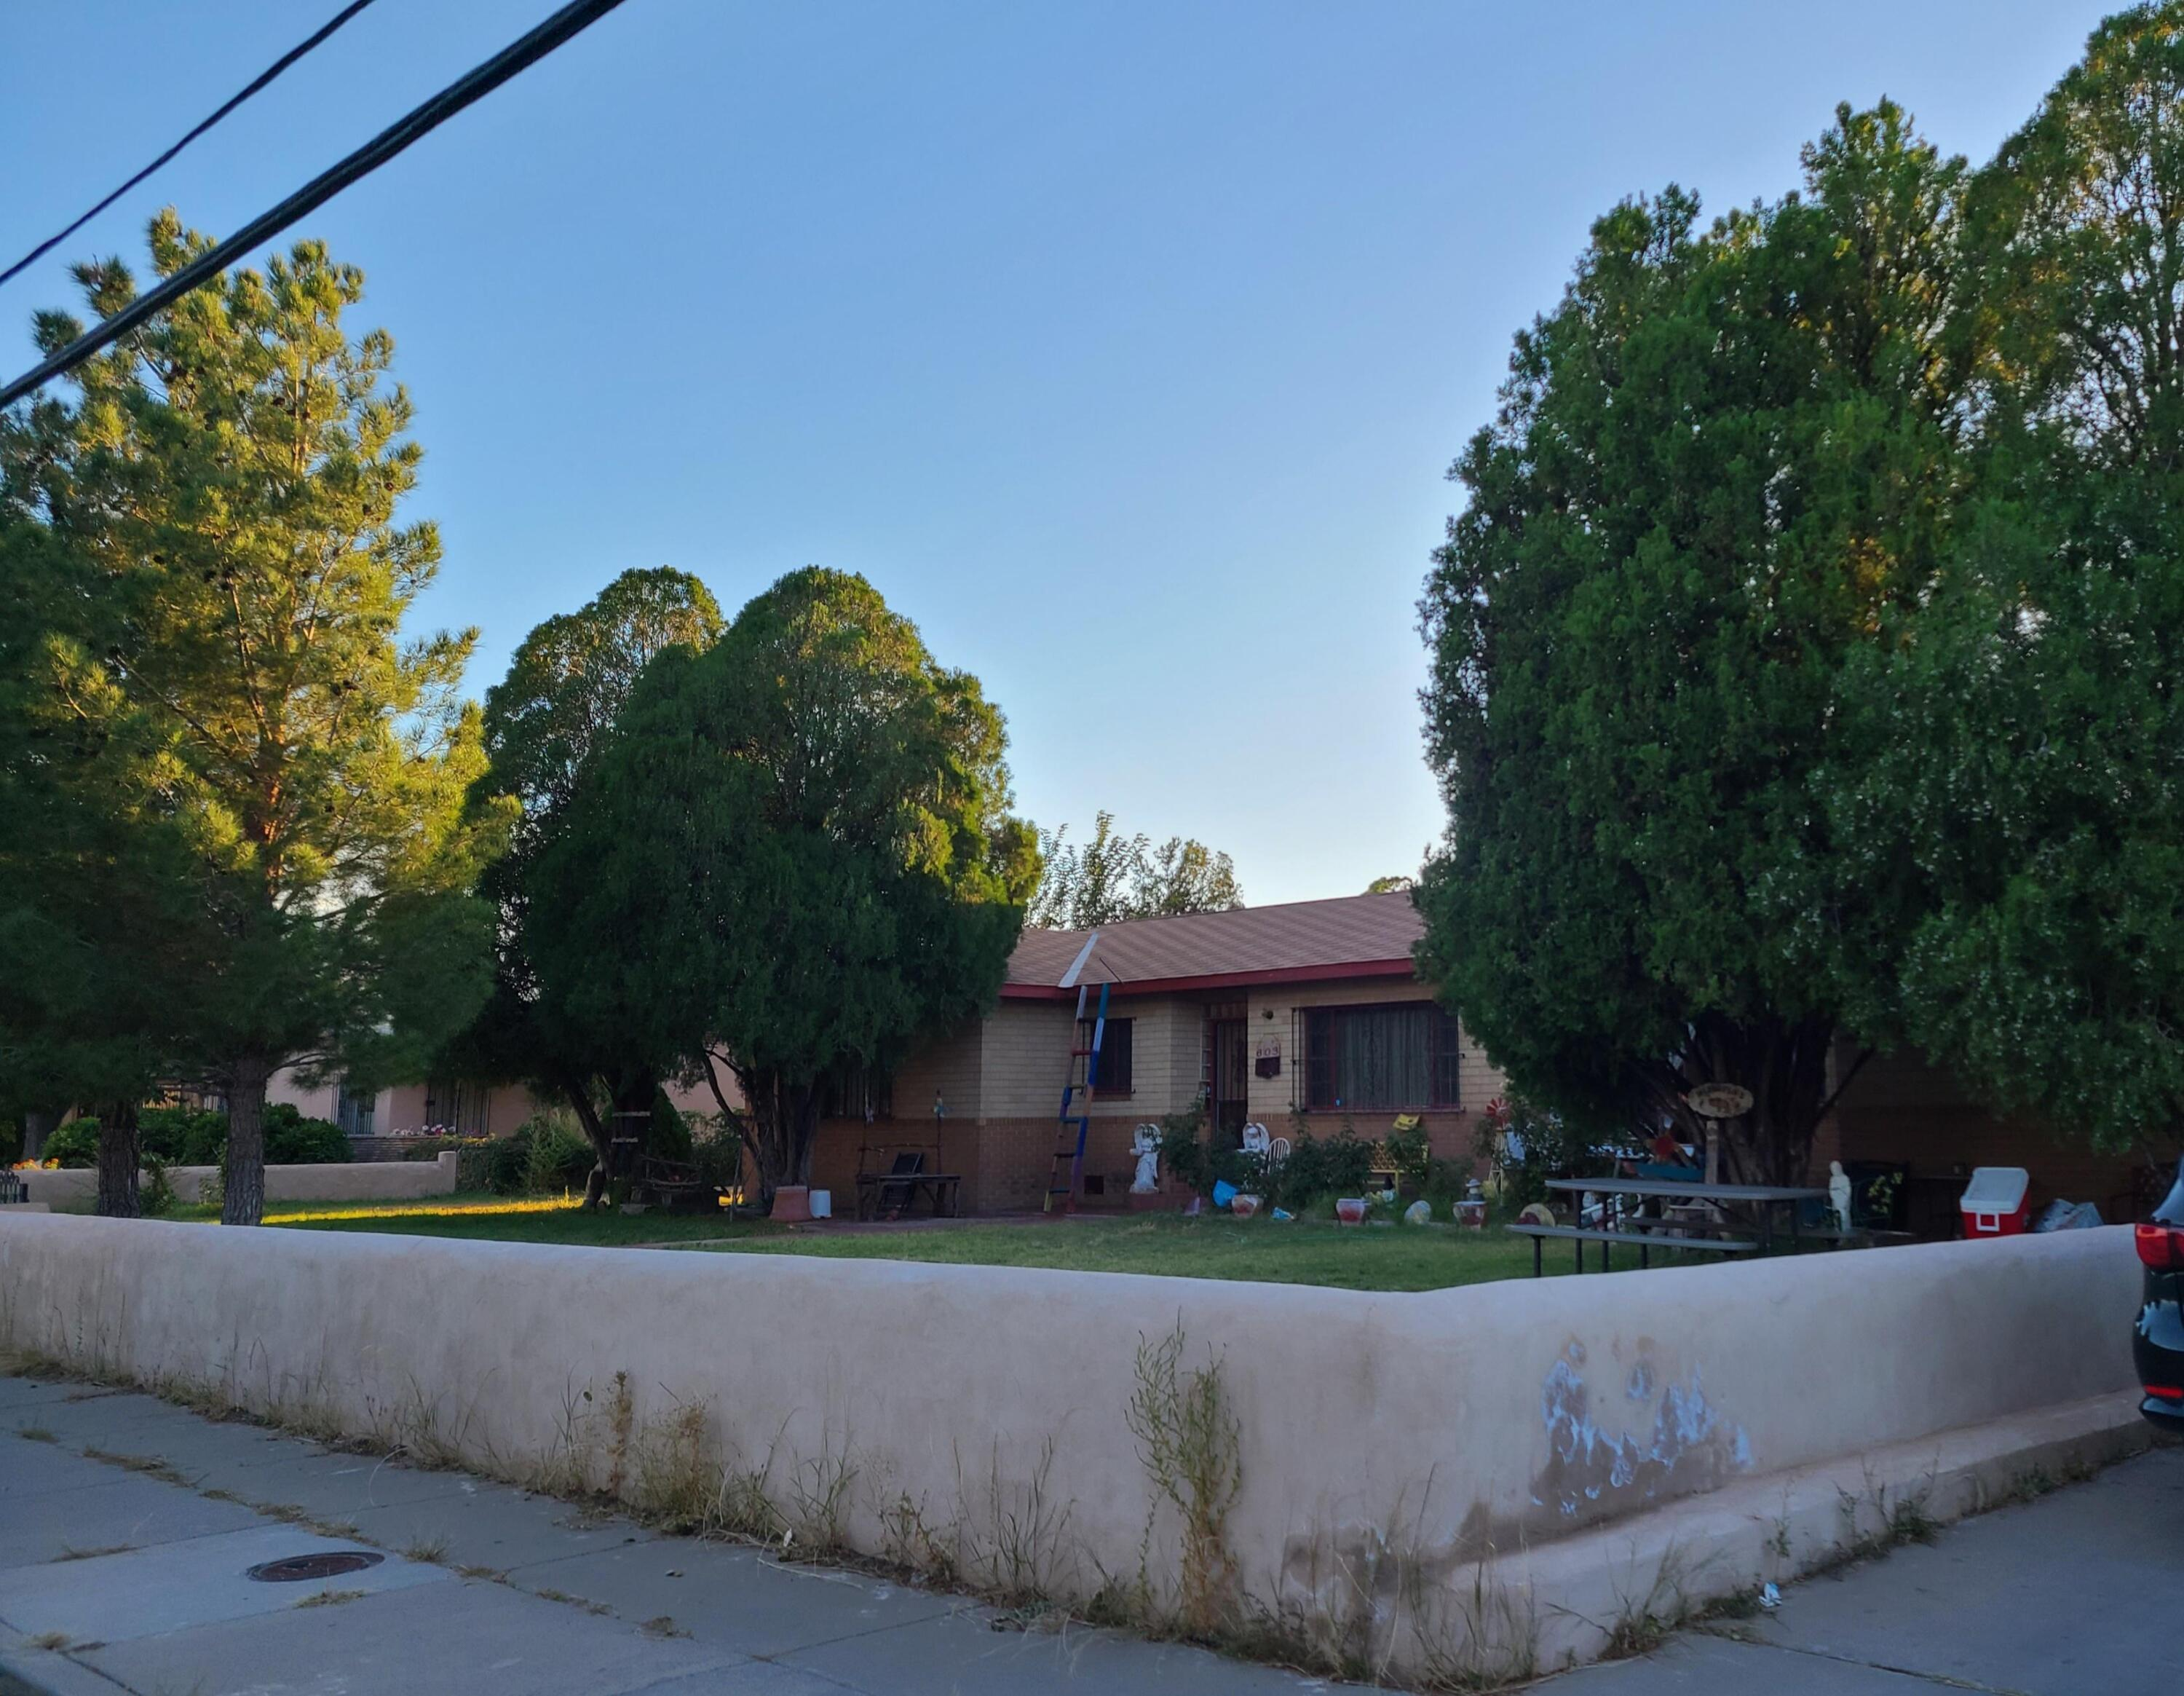 Hardwood floors, Fireplace, Metal door frames, Large home with many possibilities.